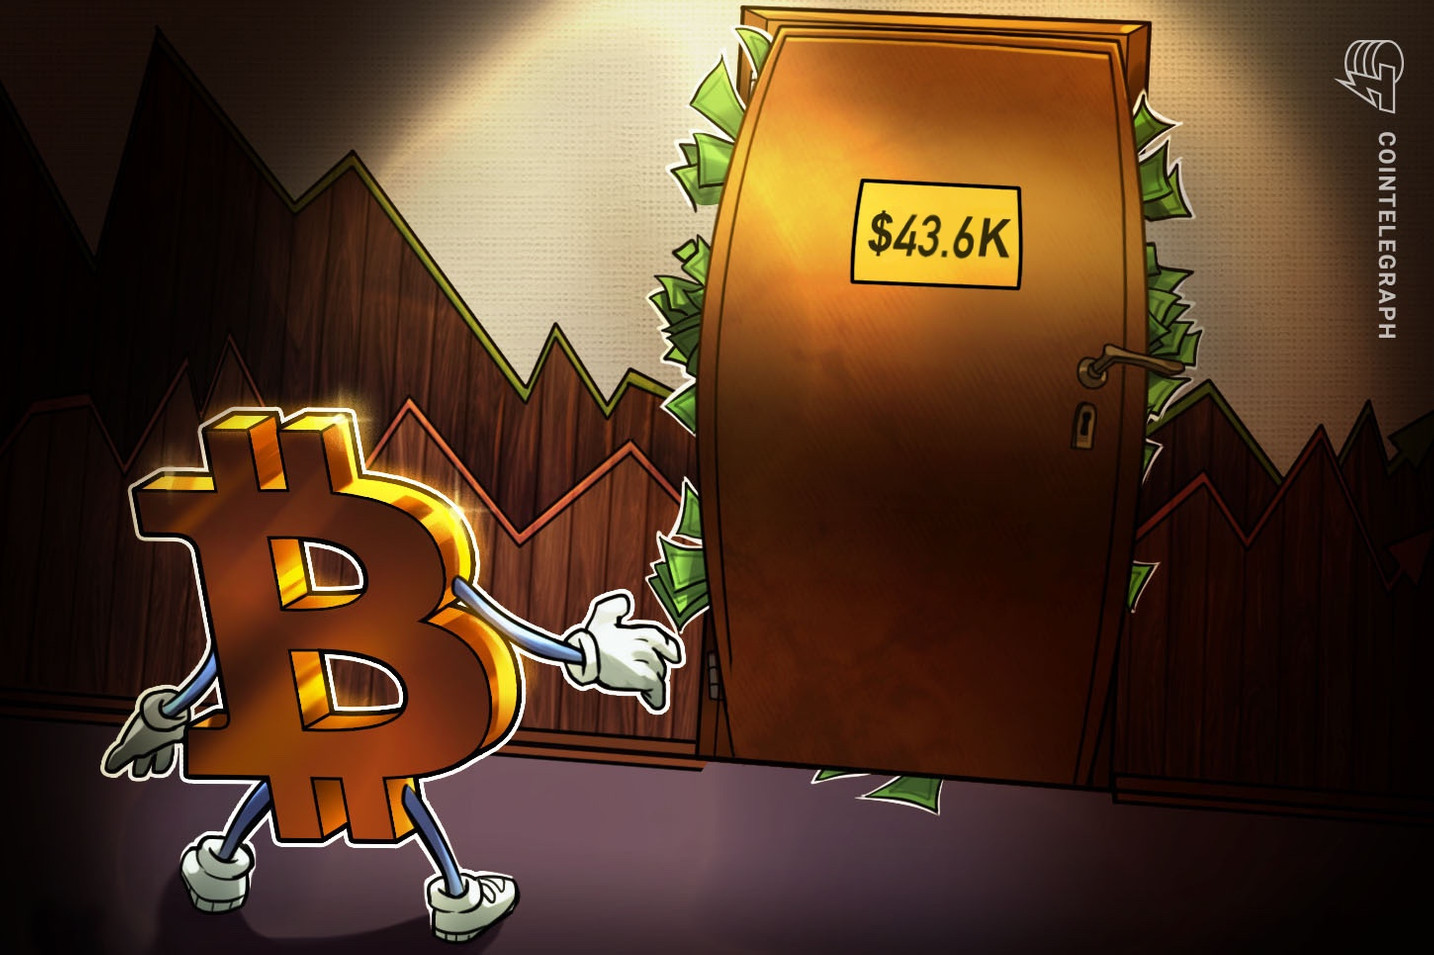 Traders say Bitcoin's bullish bias will only be confirmed by a close above $44K